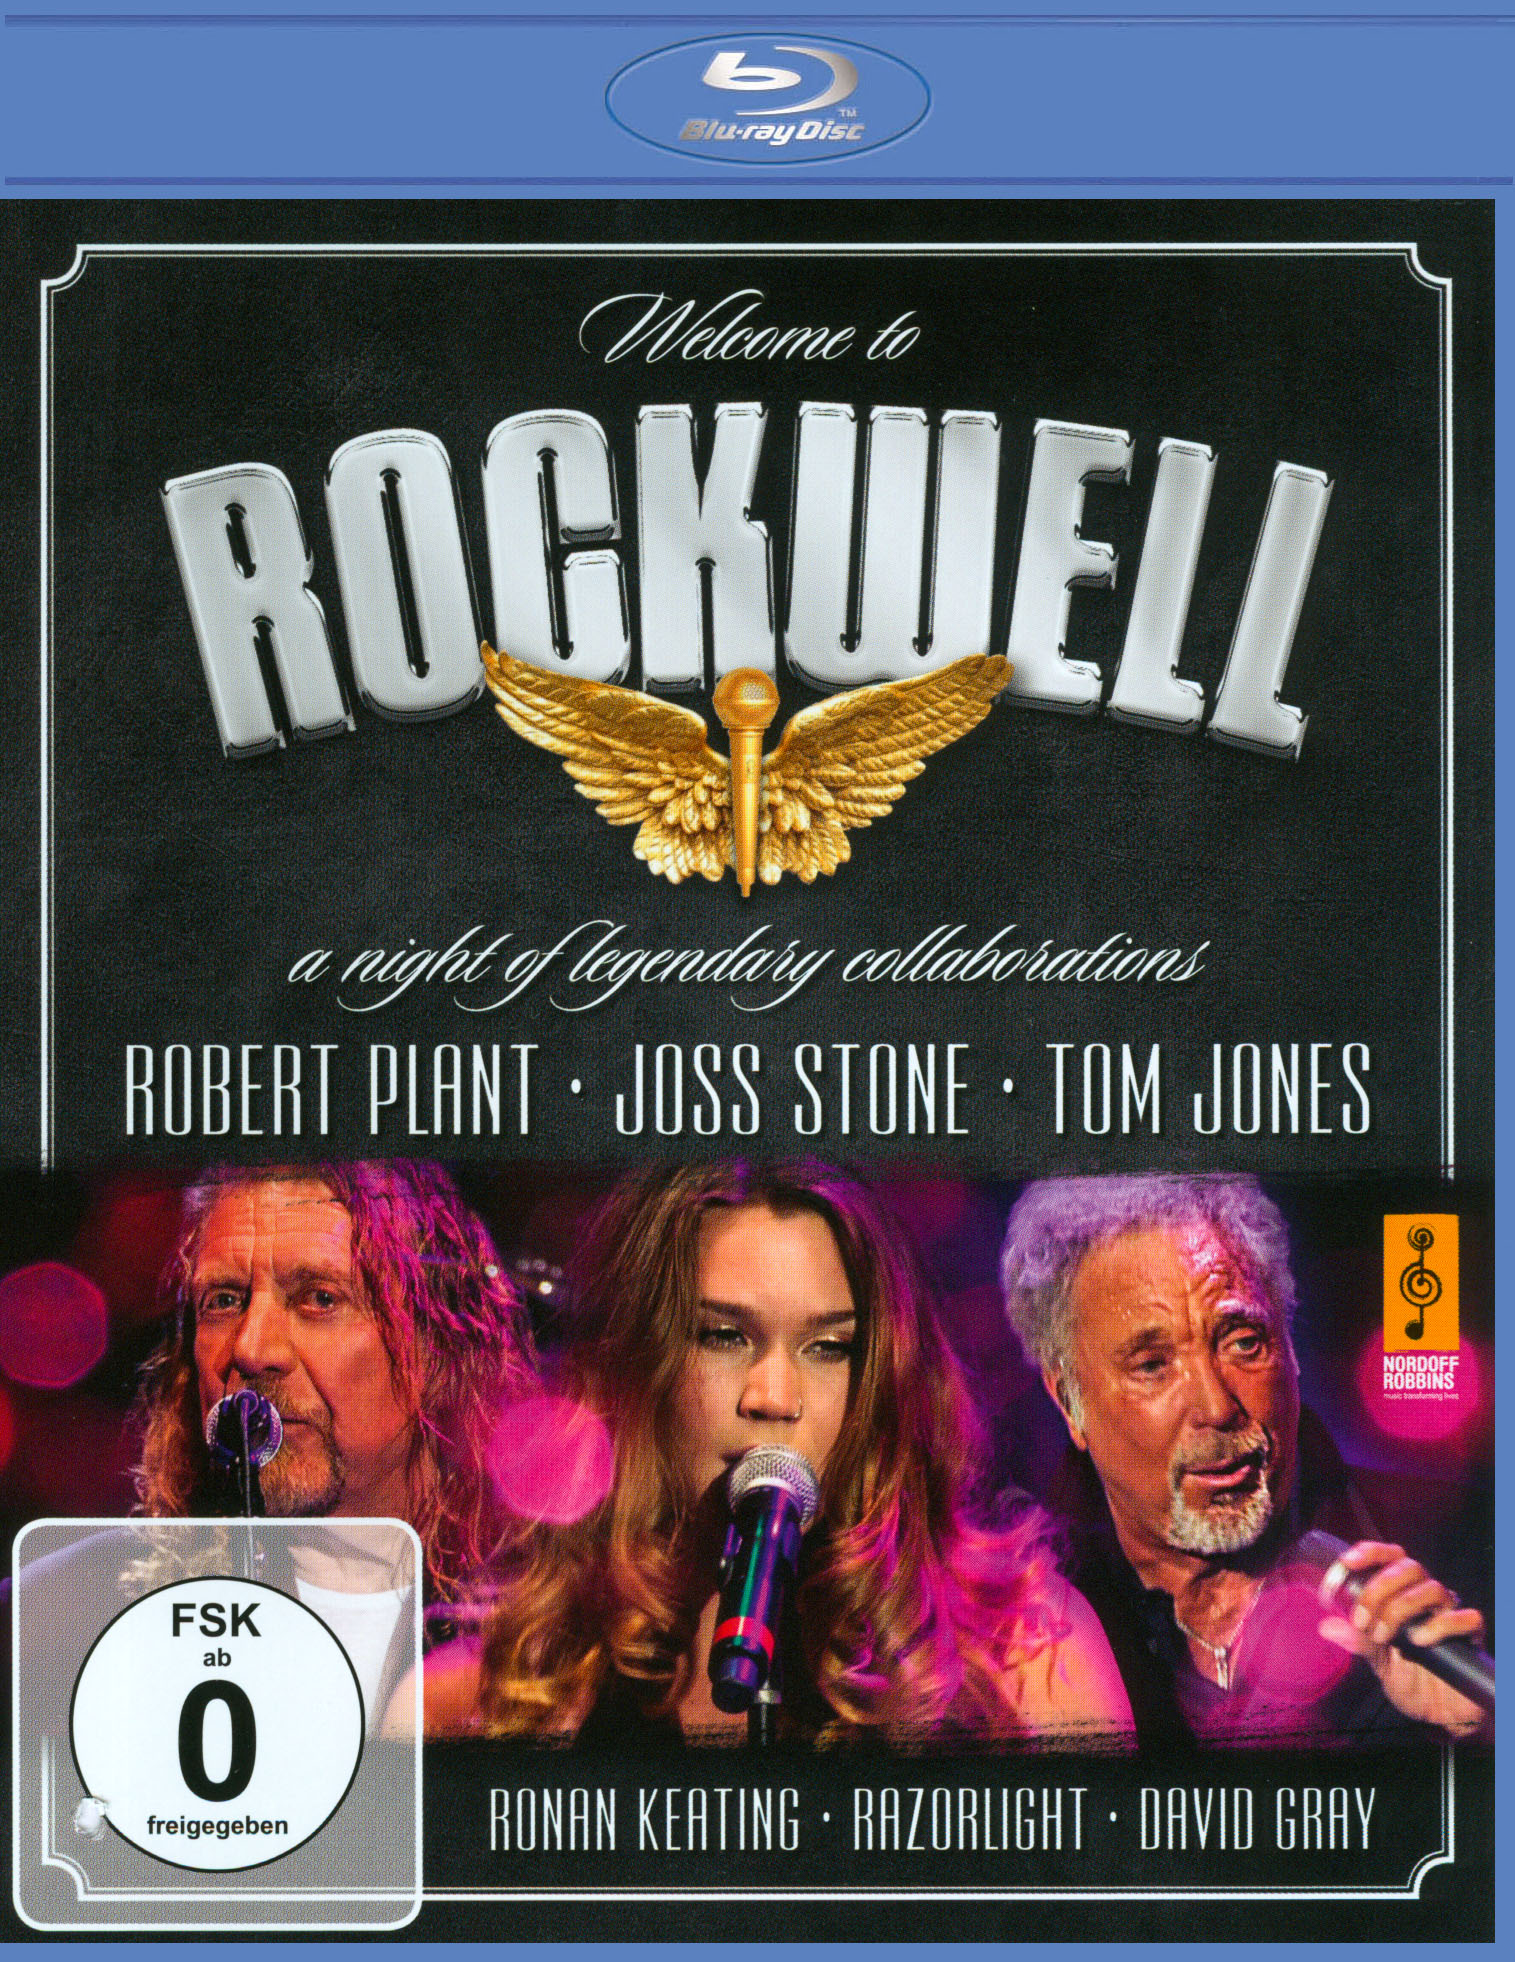 Welcome to Rockwell: A Night of Legendary Collaborations